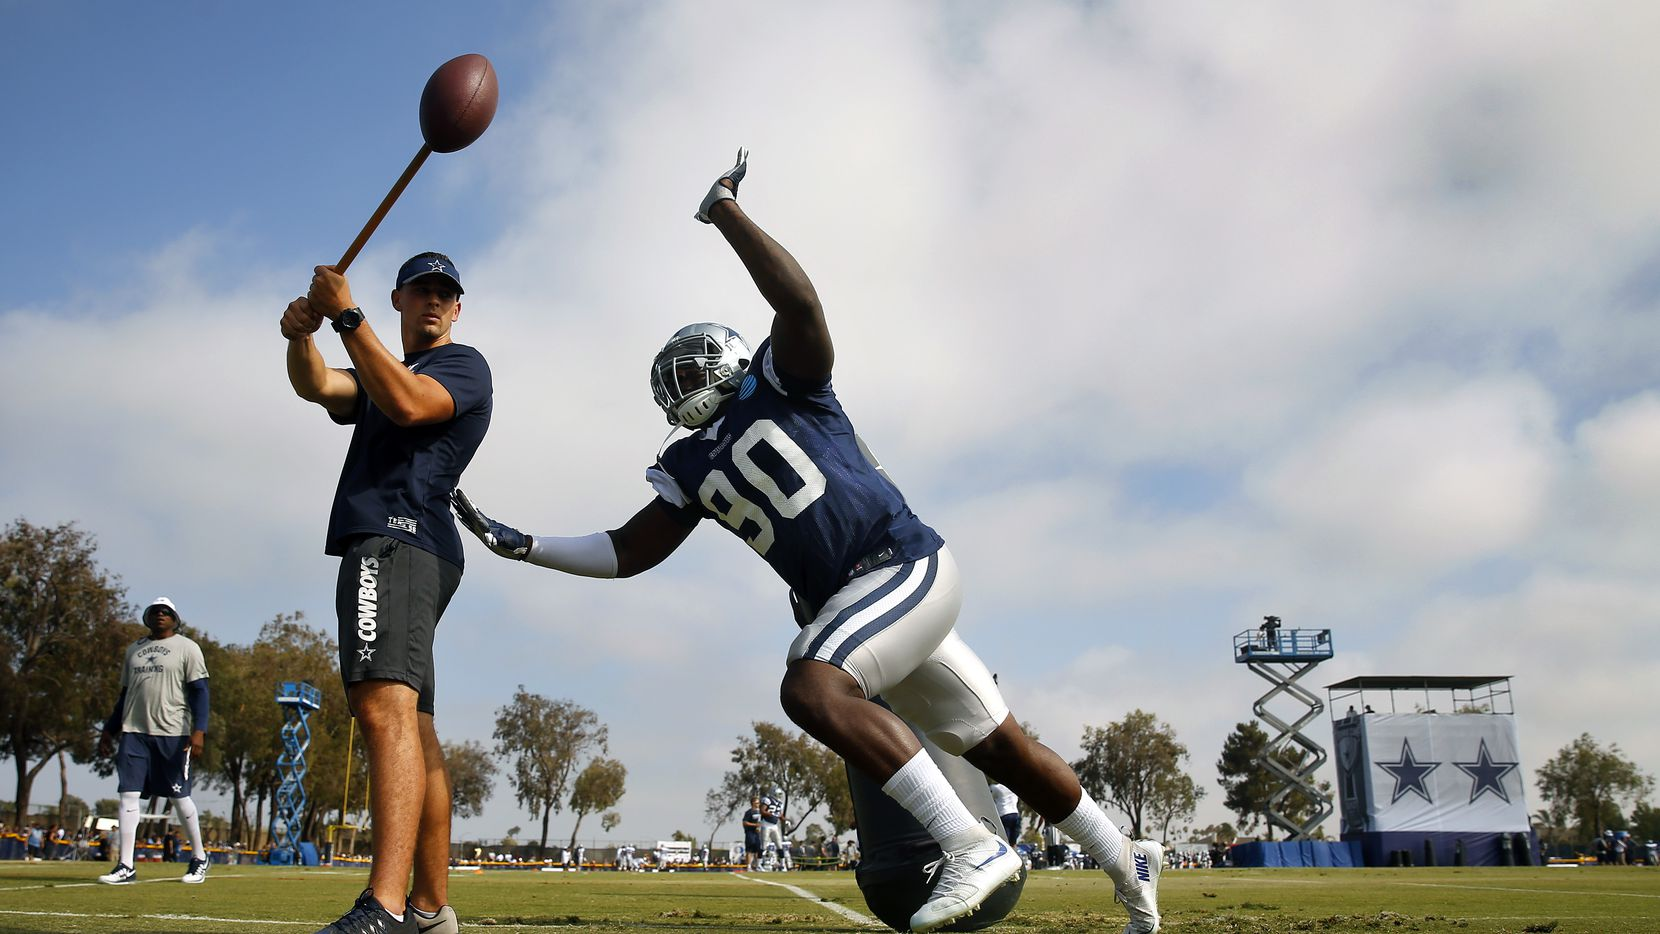 Dallas Cowboys defensive end Demarcus Lawrence (90) races in a circle to knock down the football during afternoon practice drills at training camp in Oxnard, California, Thursday, August 4, 2016. (Tom Fox/The Dallas Morning News)